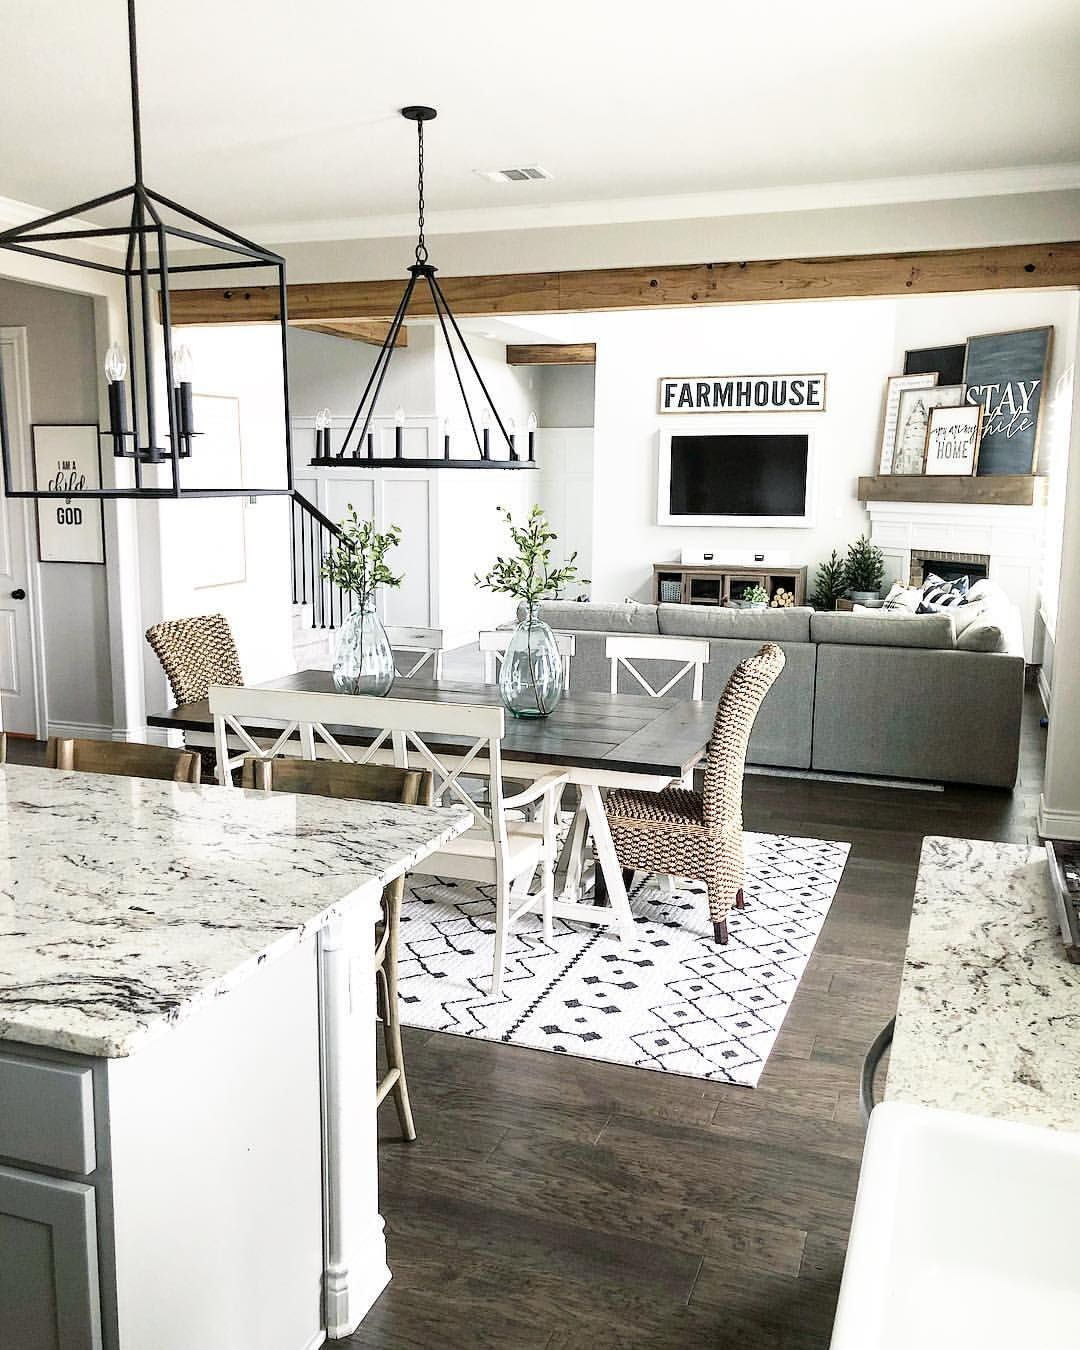 Connected To The Kitchen Dining Rooms And Eating Area Designs: Farmhouse Style Open Layout With Kitchen, Dining Room And